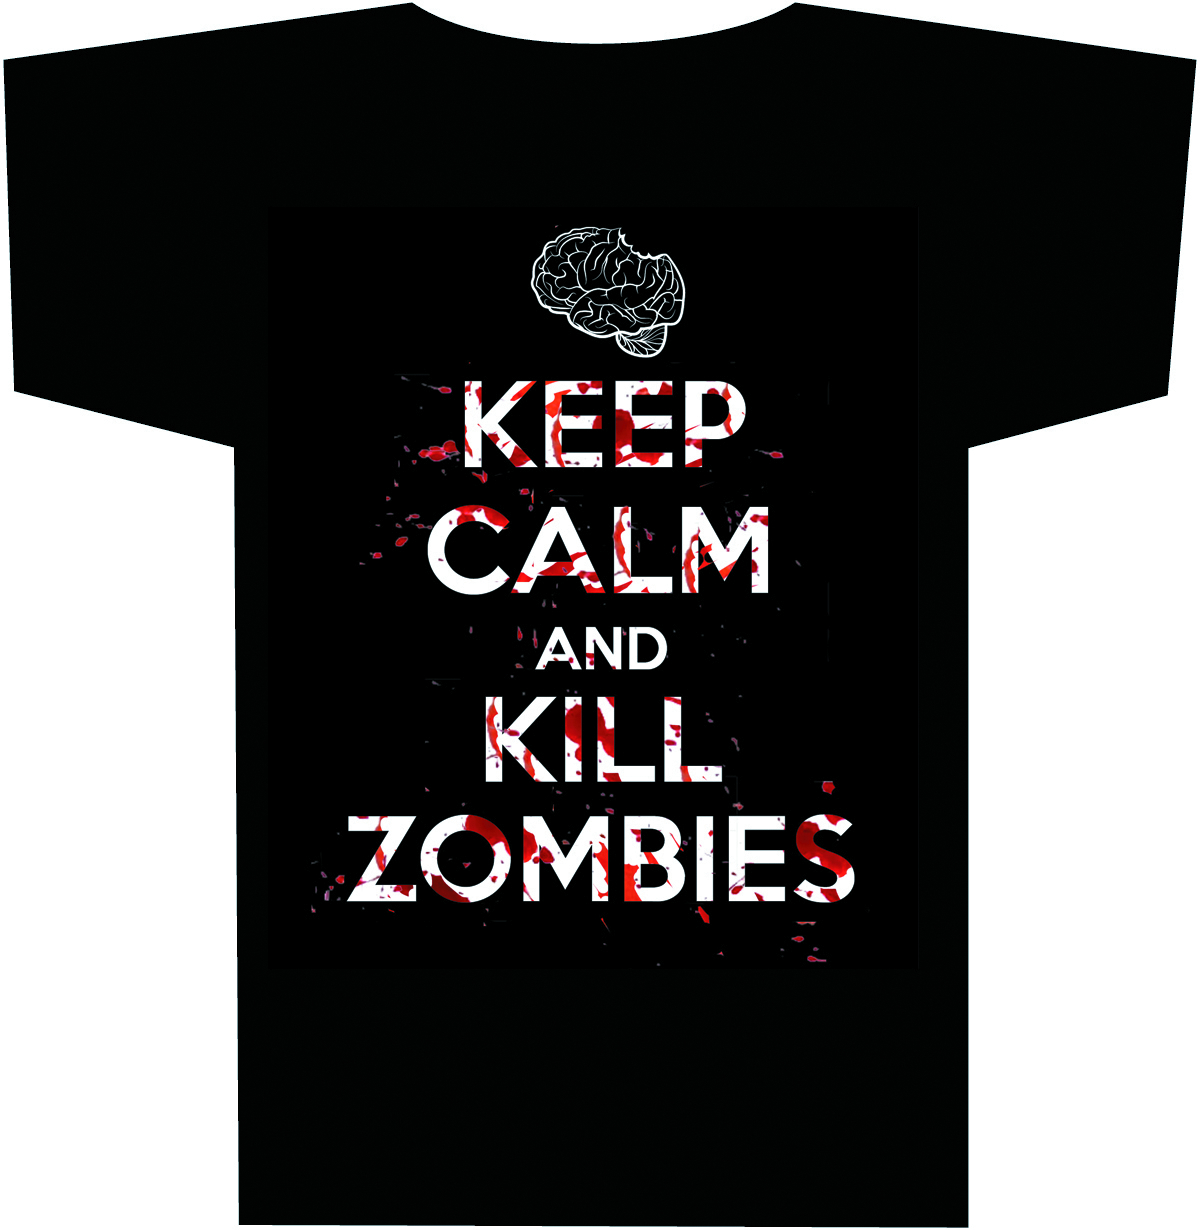 KEEP CALM & KILL ZOMBIES T/S MED